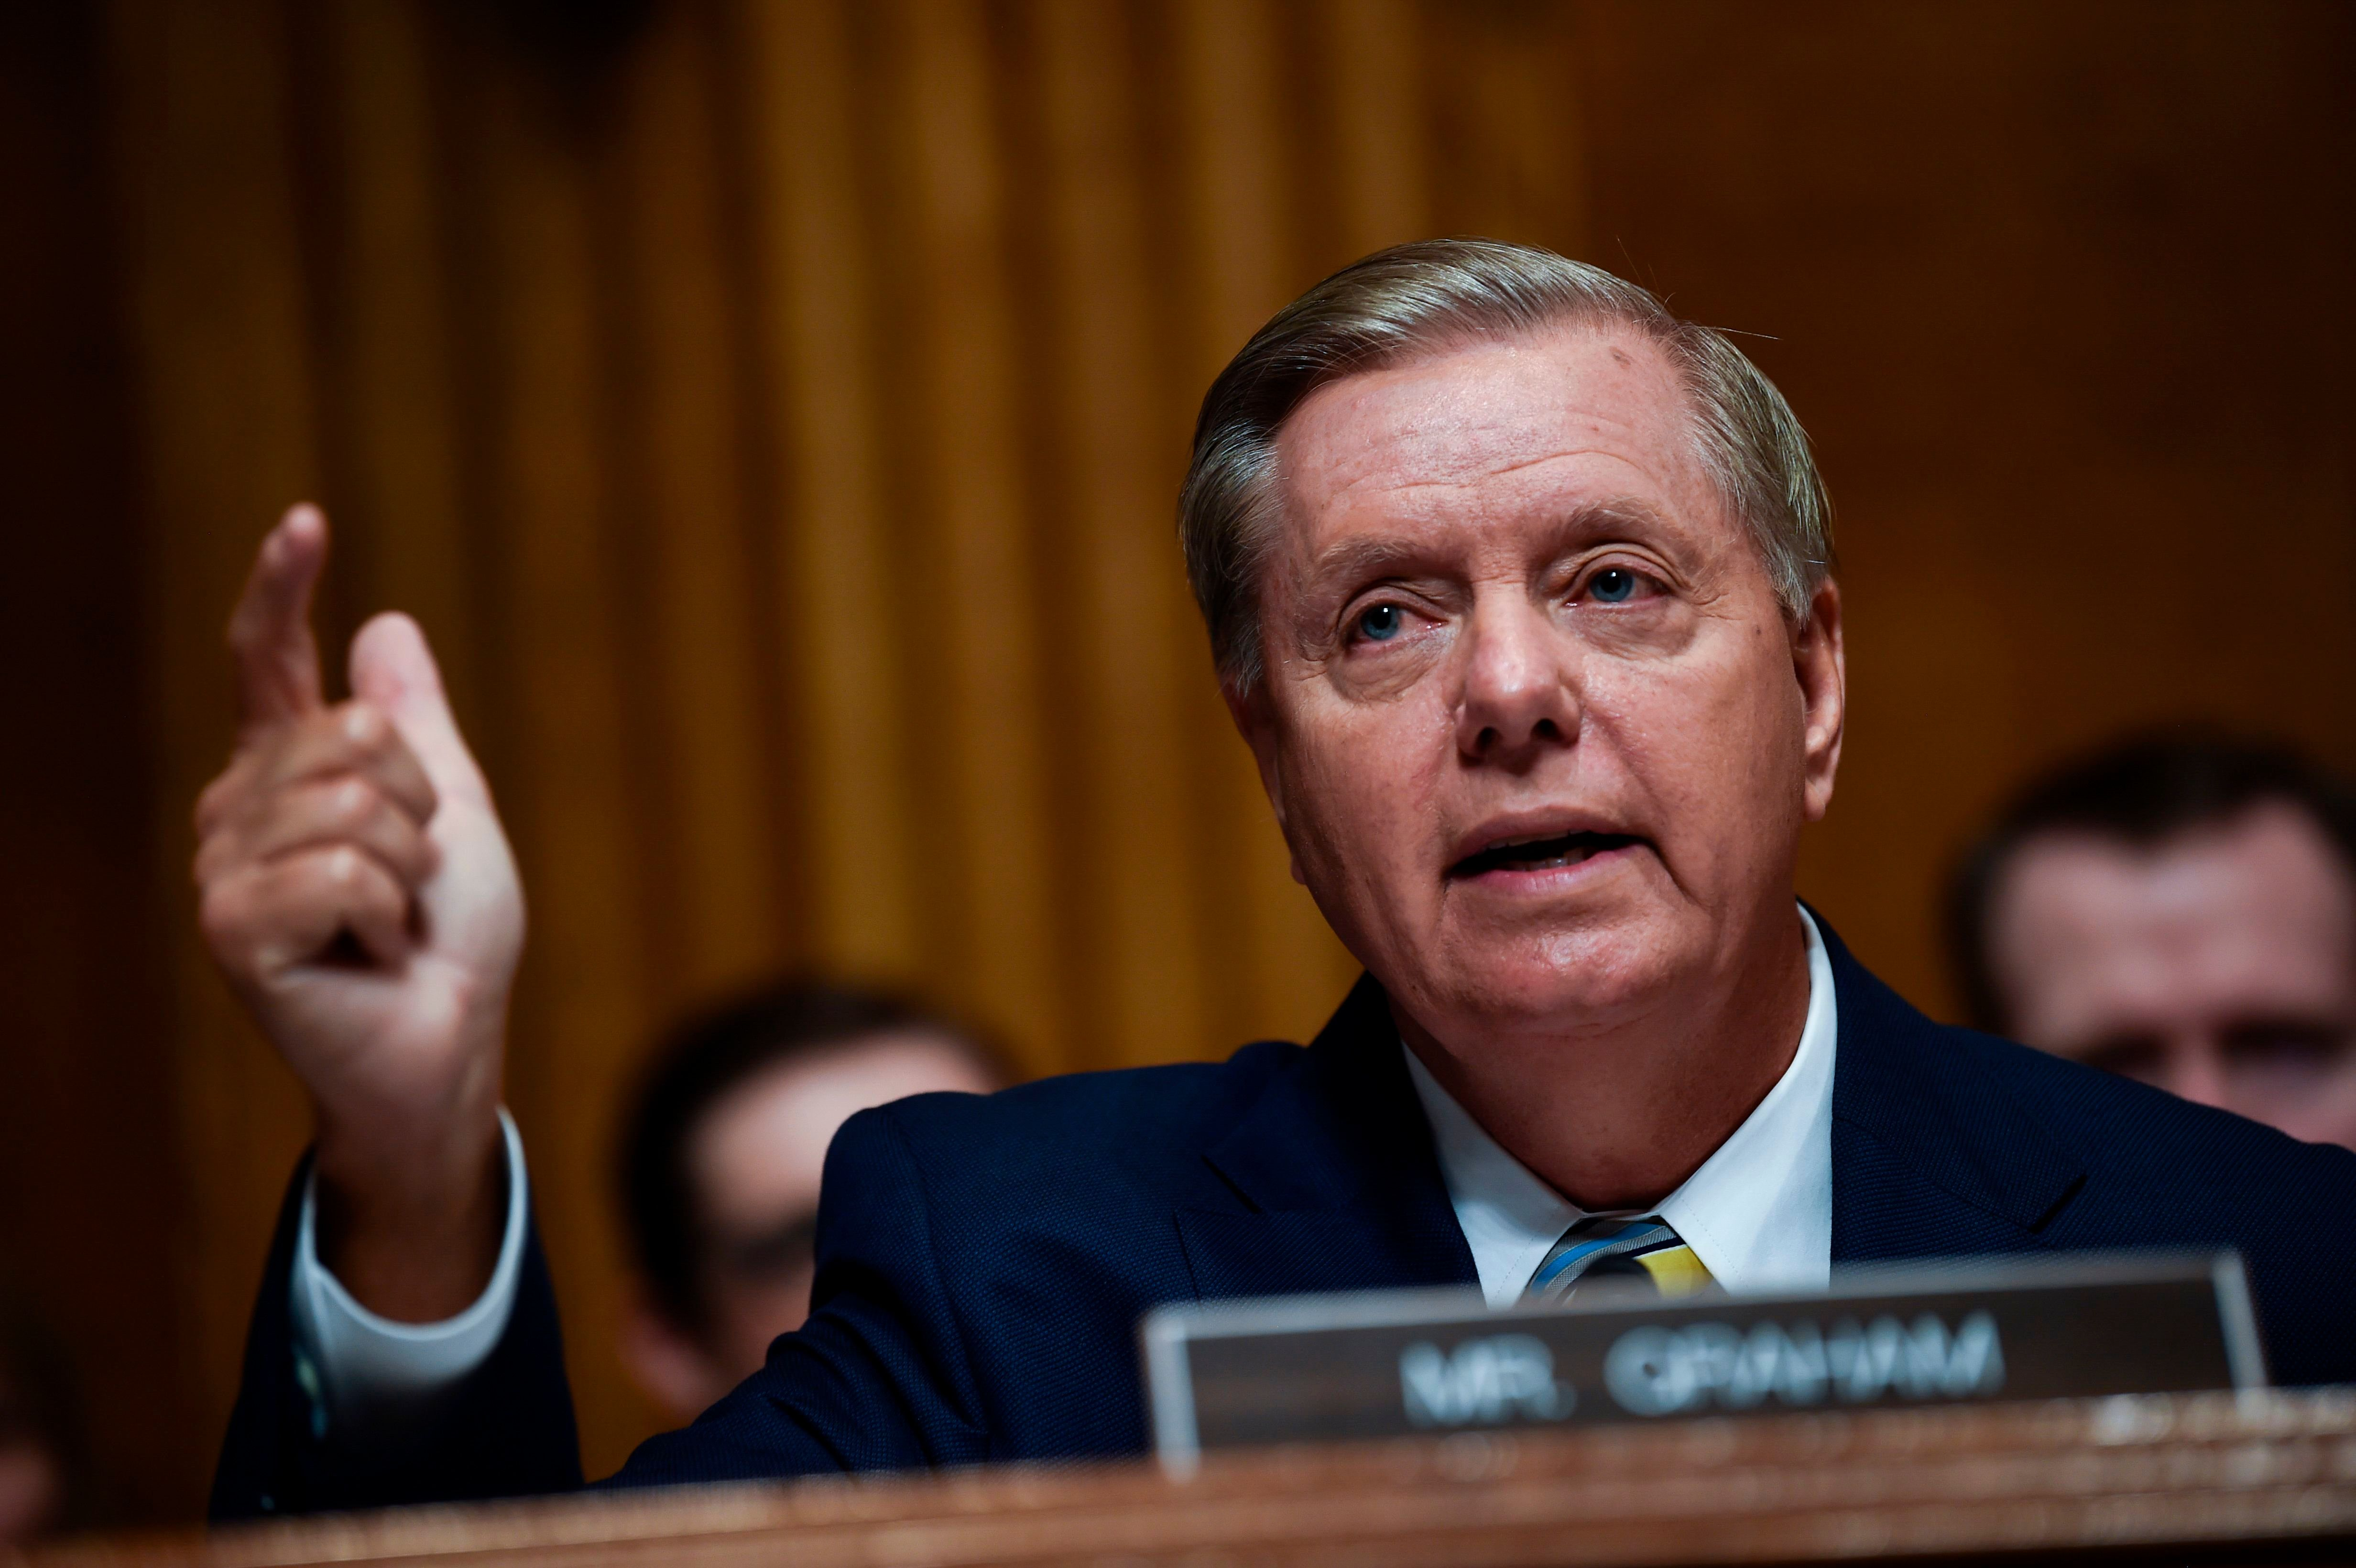 Senate Judiciary Committee member Senator Lindsey Graham (R-SC) speaks during a markup hearing on Capitol Hill in Washington, DC on September 28, 2018, on the nomination of Brett M. Kavanaugh to be an associate justice of the Supreme Court of the United States. - Kavanaugh's contentious Supreme Court nomination will be put to an initial vote Friday, the day after a dramatic Senate hearing saw the judge furiously fight back against sexual assault allegations recounted in harrowing detail by his accuser. (Photo by Brendan SMIALOWSKI / AFP)        (Photo credit should read BRENDAN SMIALOWSKI/AFP/Getty Images)